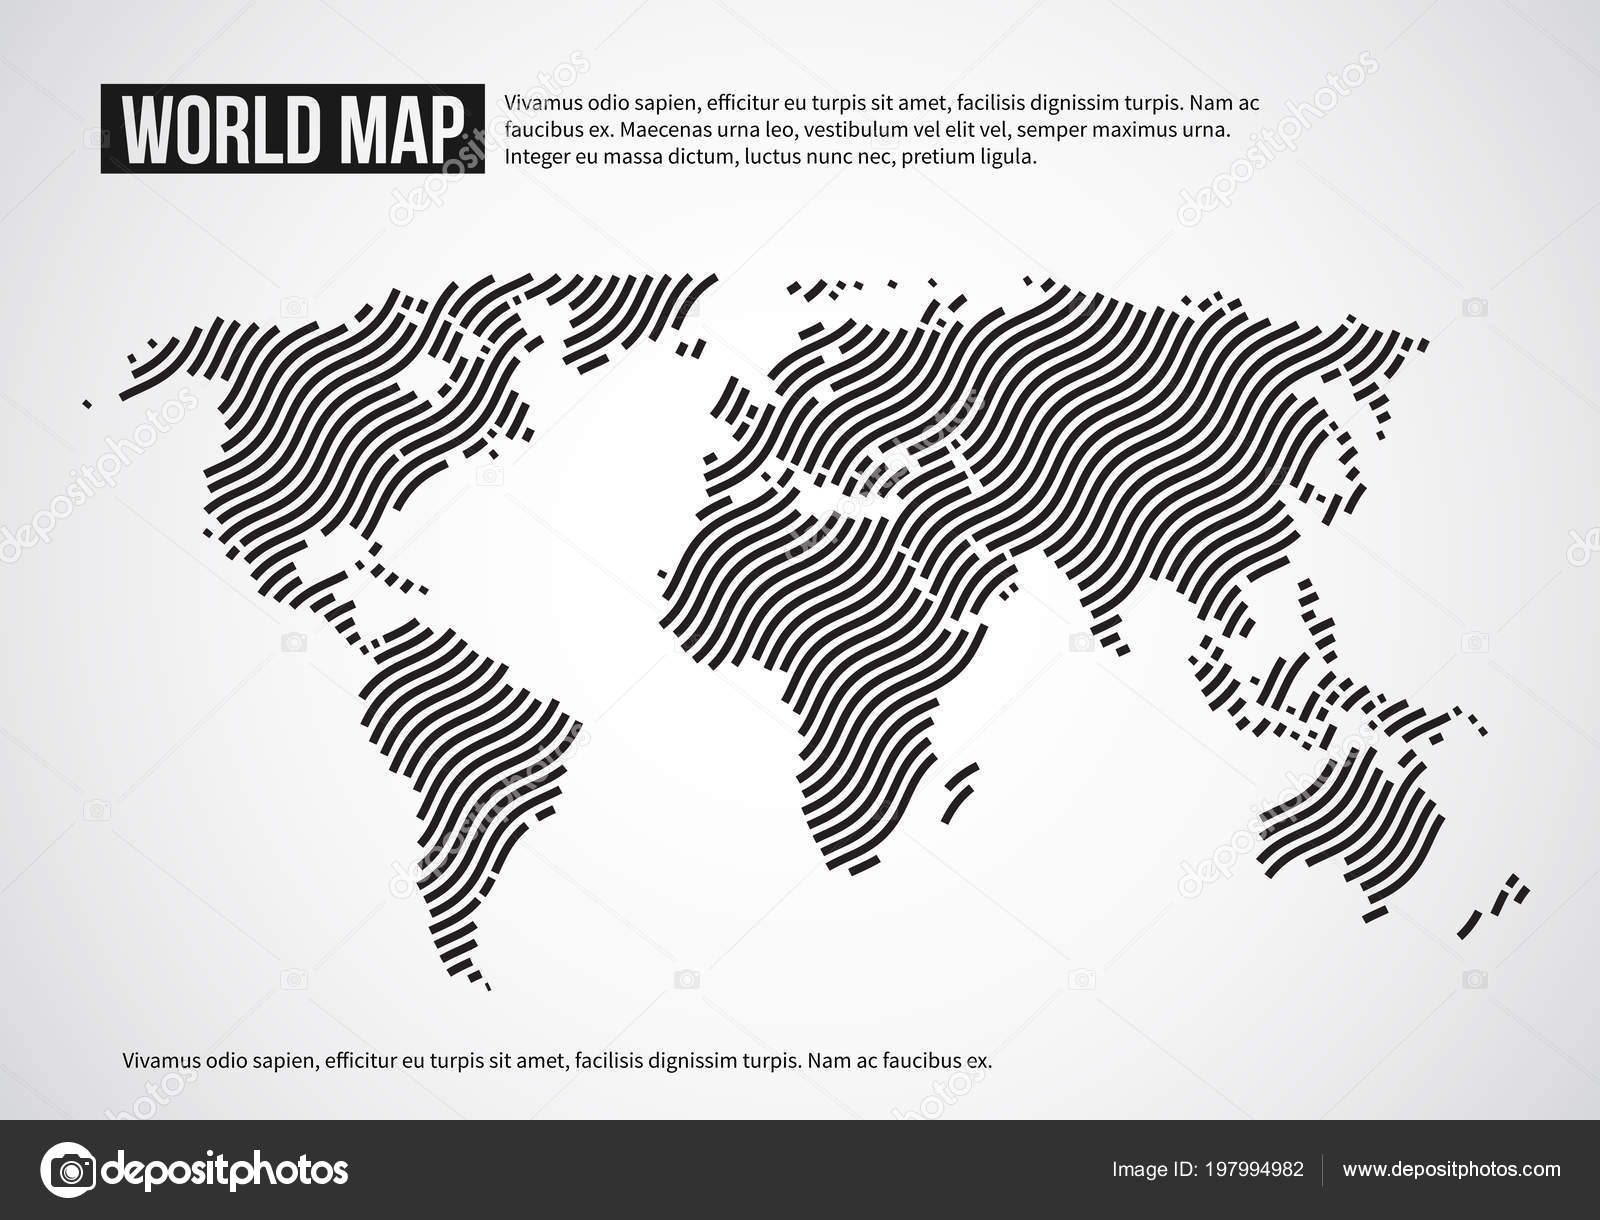 World map of wavy lines abstract globe continents topography vector world map of wavy lines abstract globe continents topography vector infographic background design world map illustration of banner with world continent gumiabroncs Images